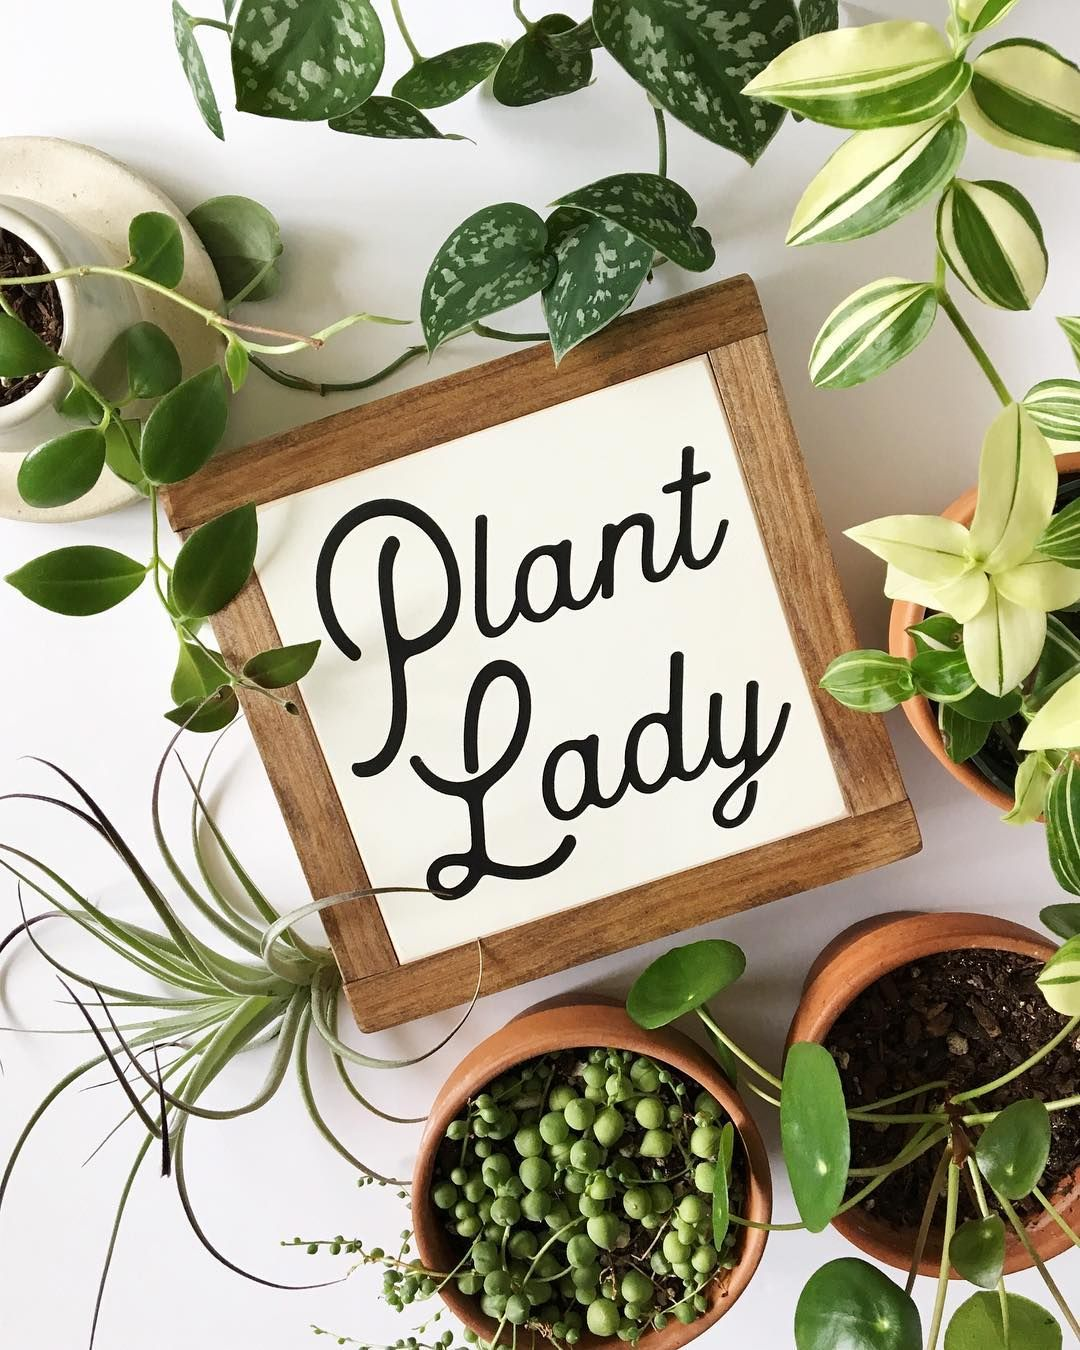 Pine And Birch Crazy Plant Lady Plant Lady Plant Signs 640 x 480